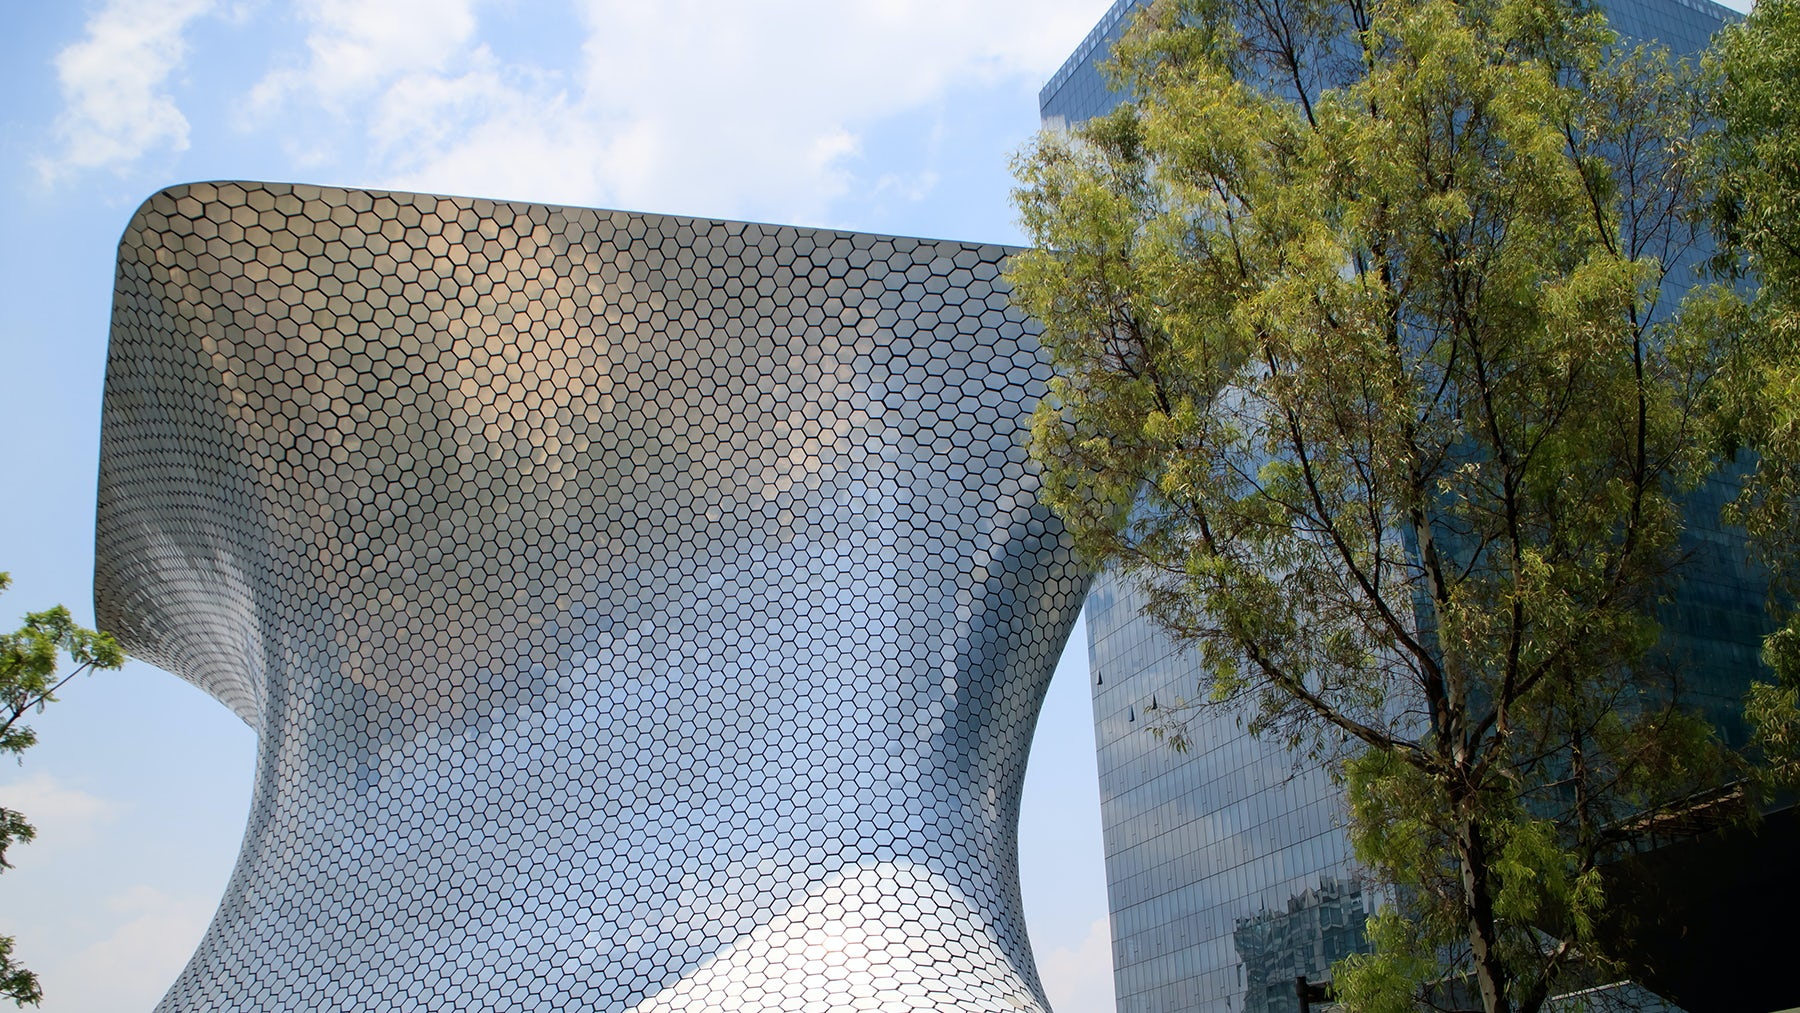 Museo Soumaya in Mexico City, home to many of the capital's luxury retailers | Source: Shutterstock